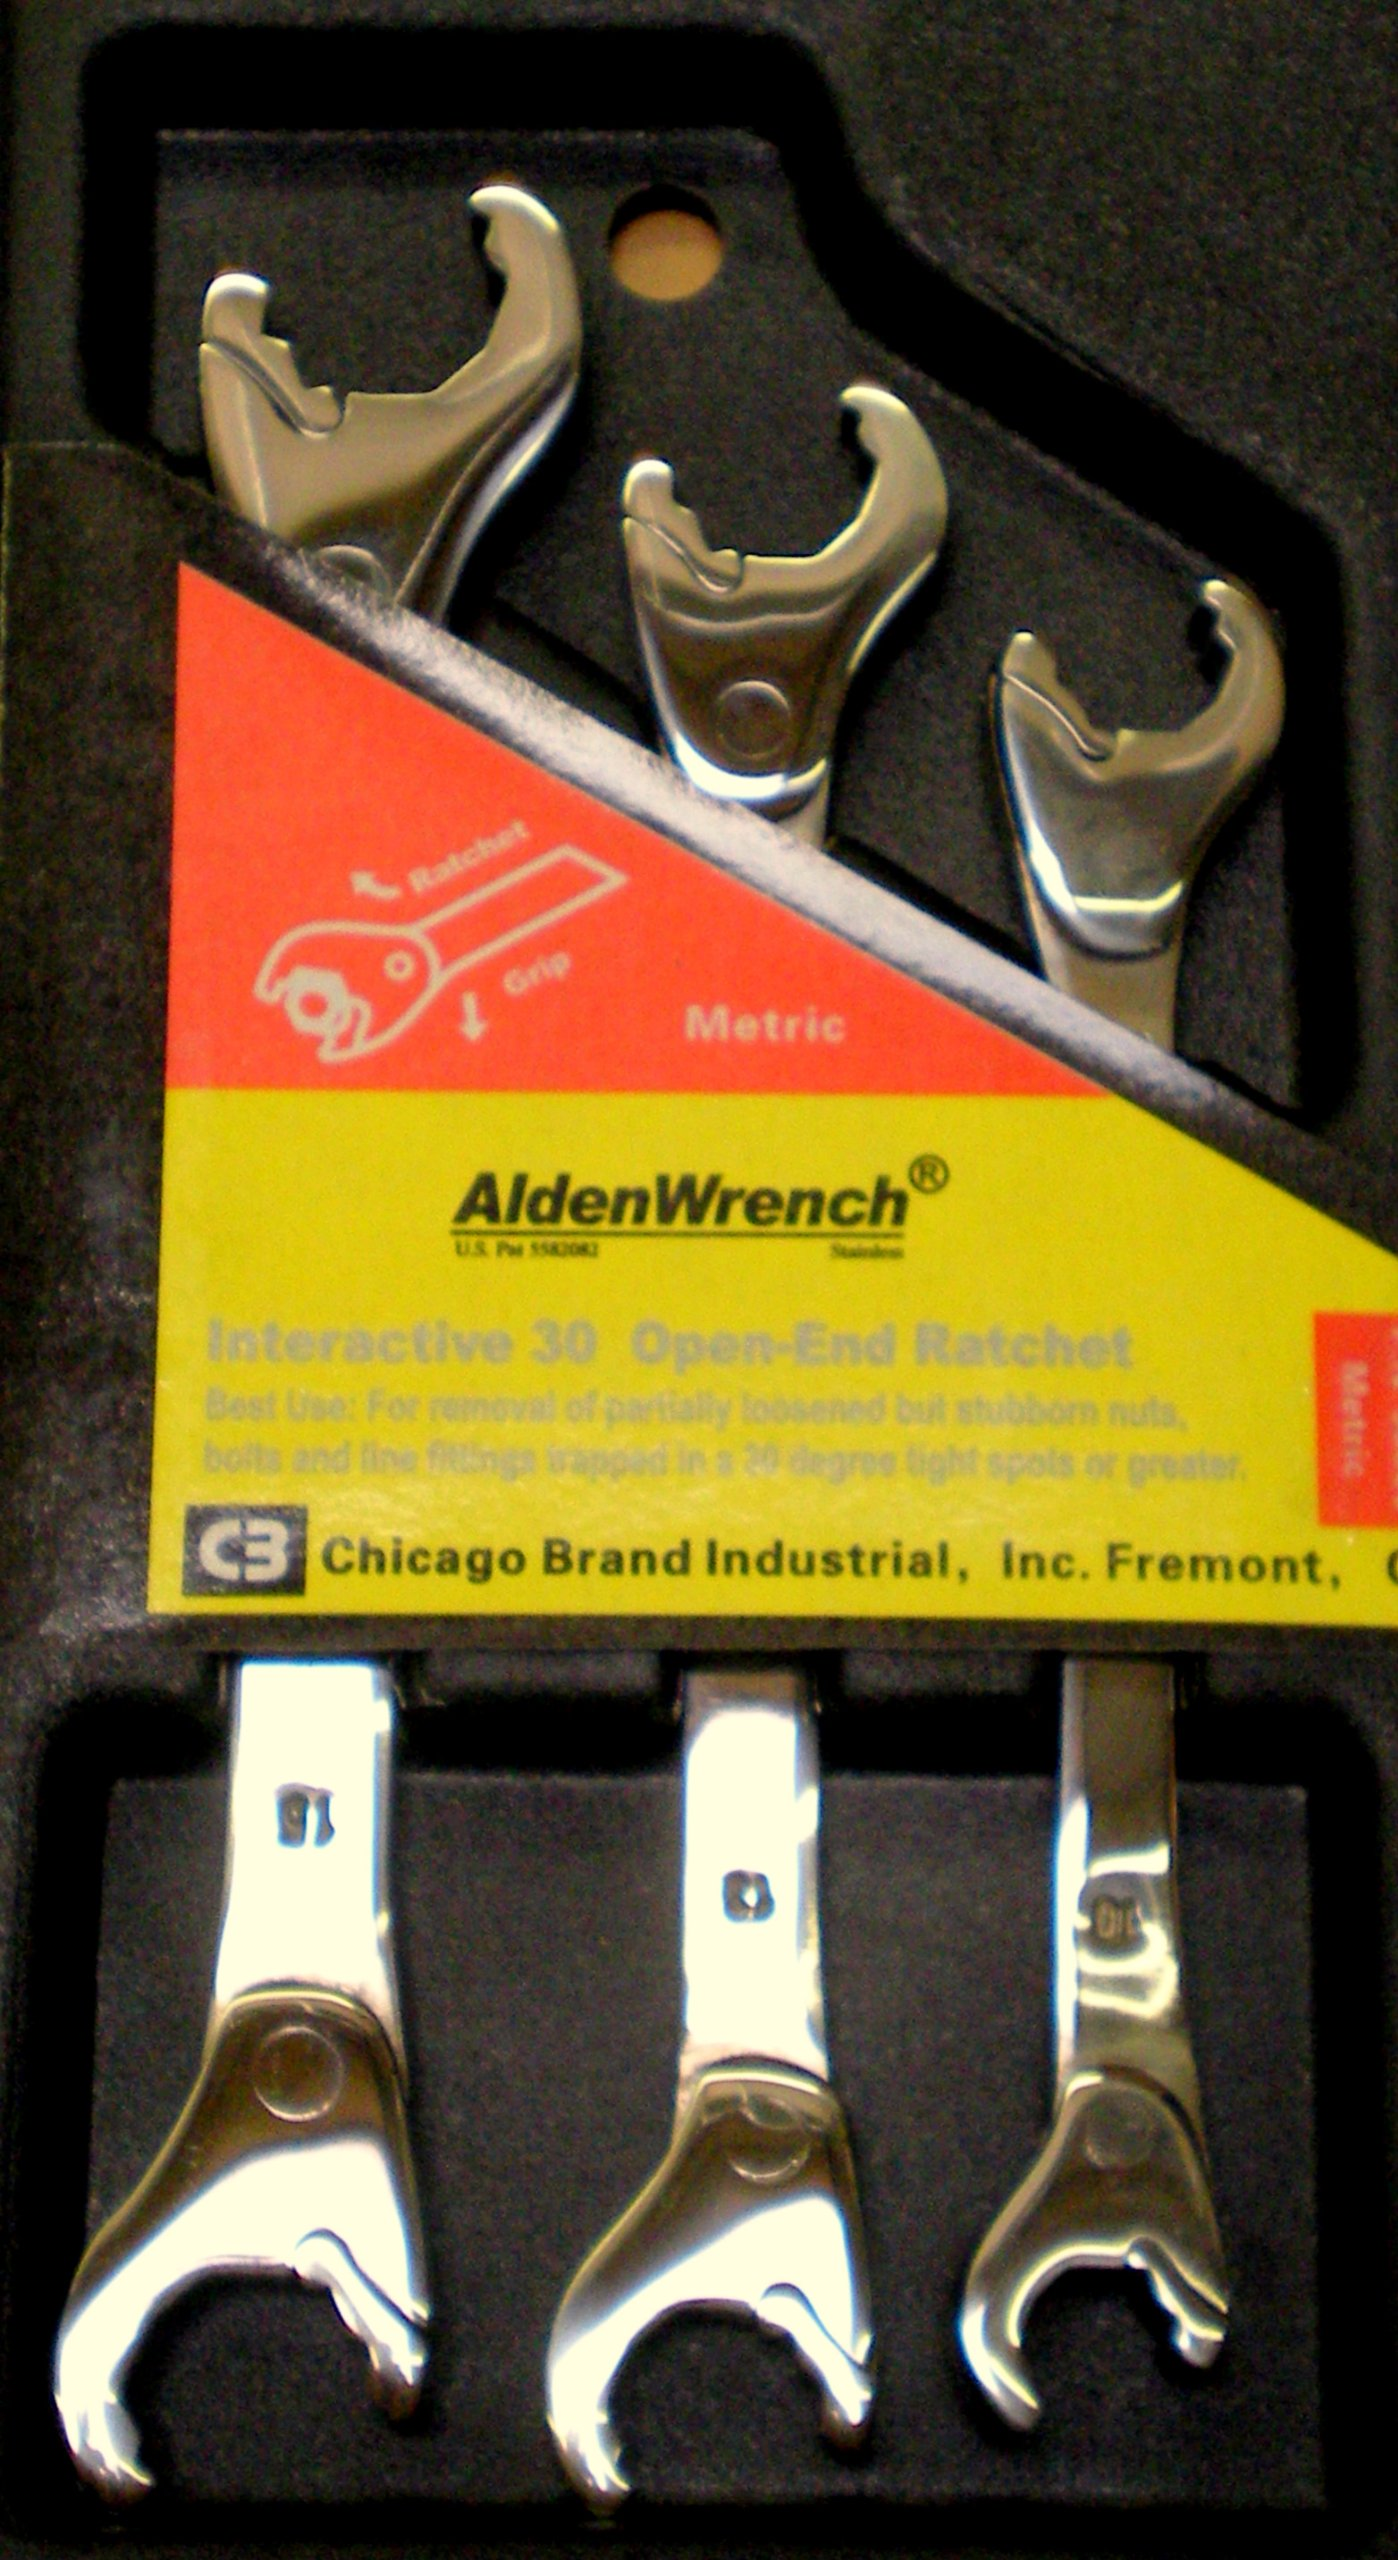 Alden Wrench 56039 Double Head Ratching Open-End Wrench 3 Piece Set Metric by Alden